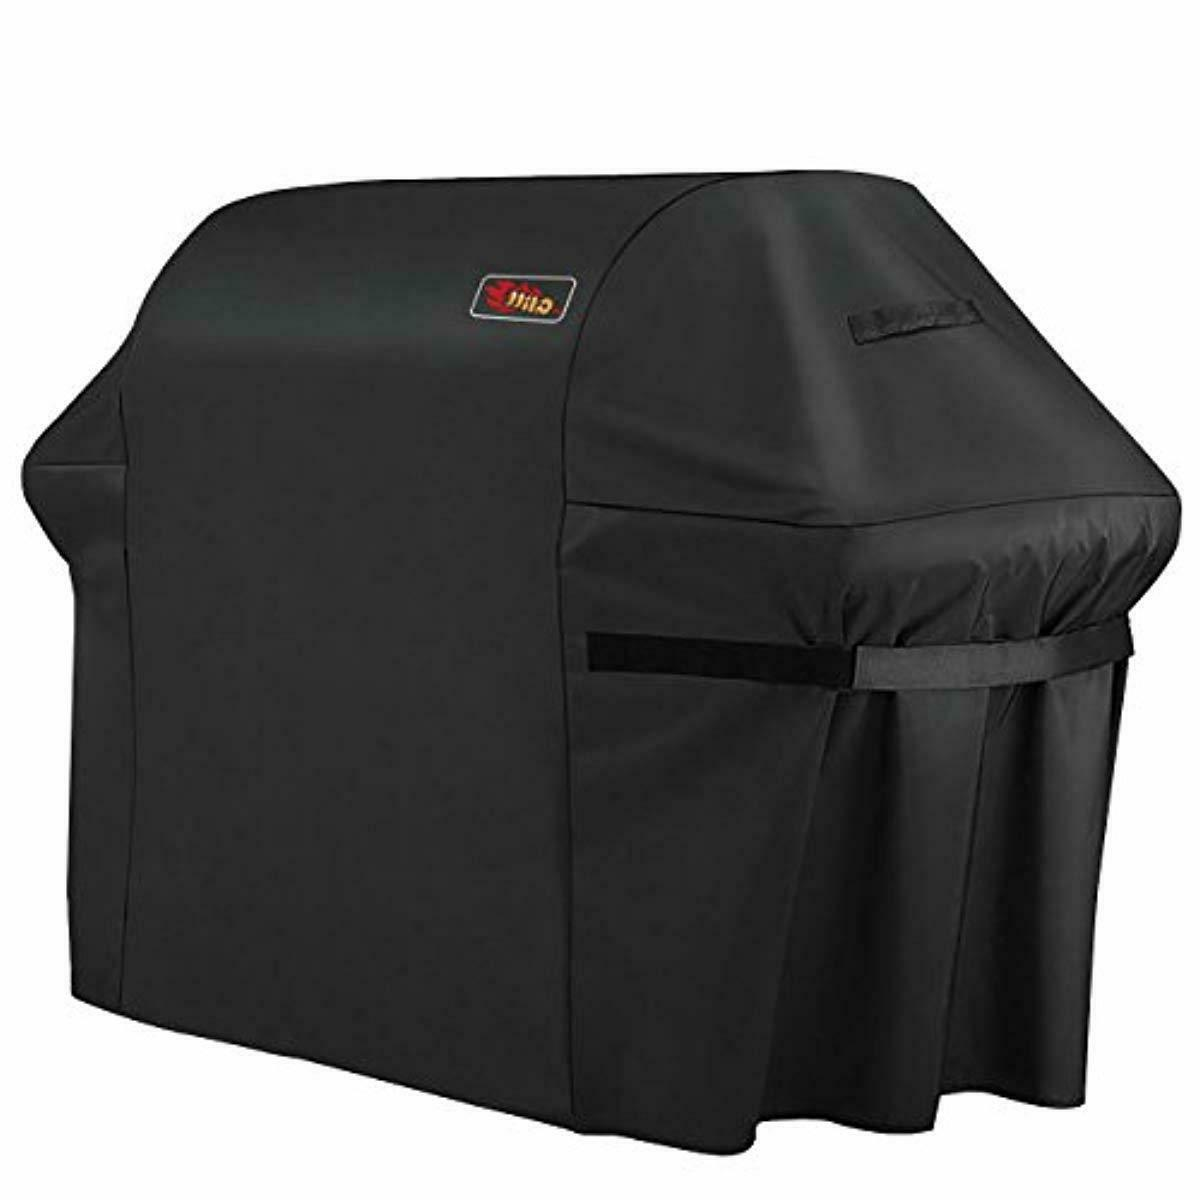 victsing 5 burner gas grill cover heavy